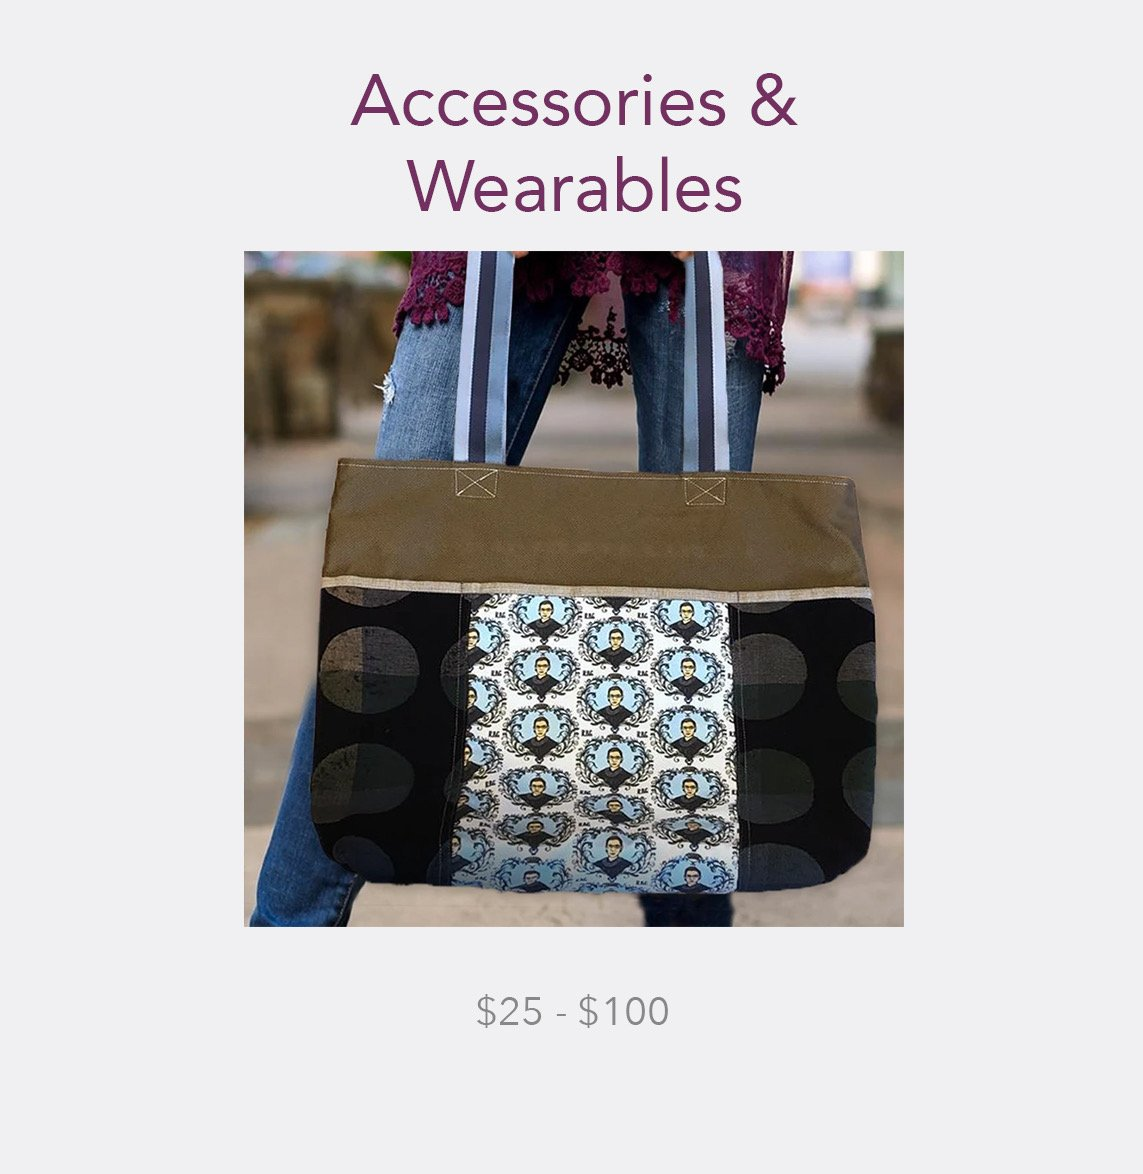 Accessories & Wearables